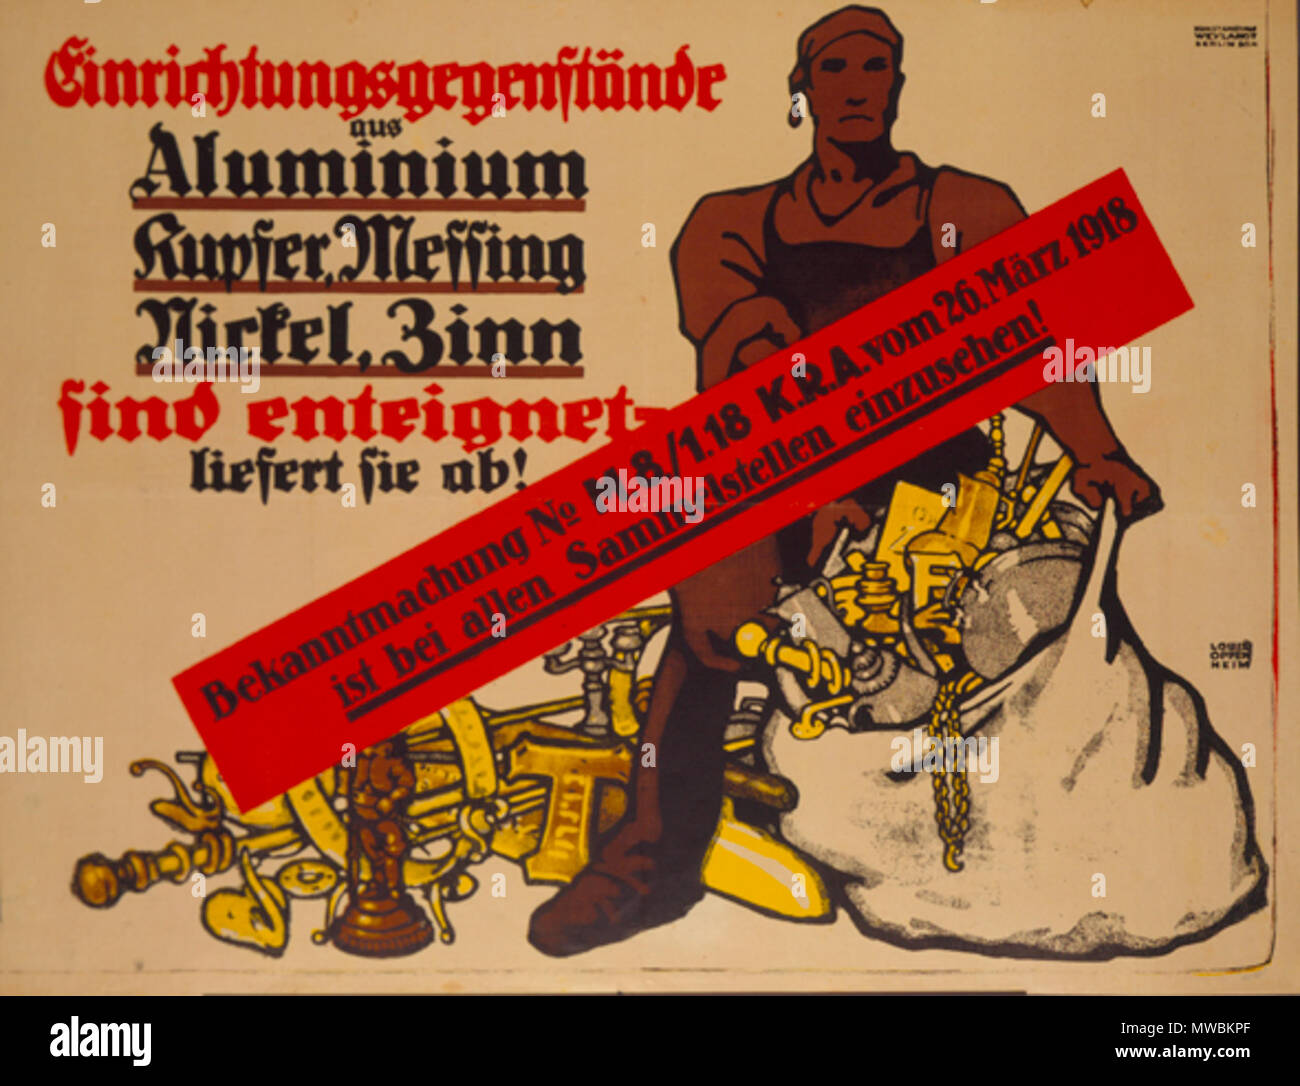 ". English: By 1918 the German economic situation had become so desperate that the government confiscated personal items made of metal. The poster, designed by Louis Oppenheim, reads: ""Home Furnishings made of Aluminum, Copper, Nickel, Tin are Confiscated - Deliver Them Now! The Proclamation No. M./1.18 from K[riegs]R[ohstoff]A[bteilung] [War Materials Department] of March 26, 1918, is to be in view at all collection points."" The metals collected in this way were melted down and used for the war effort. 1918. Louis Oppenheim (1879 - 1936) 181 Einrichtungsgegenstaende - Stock Image"